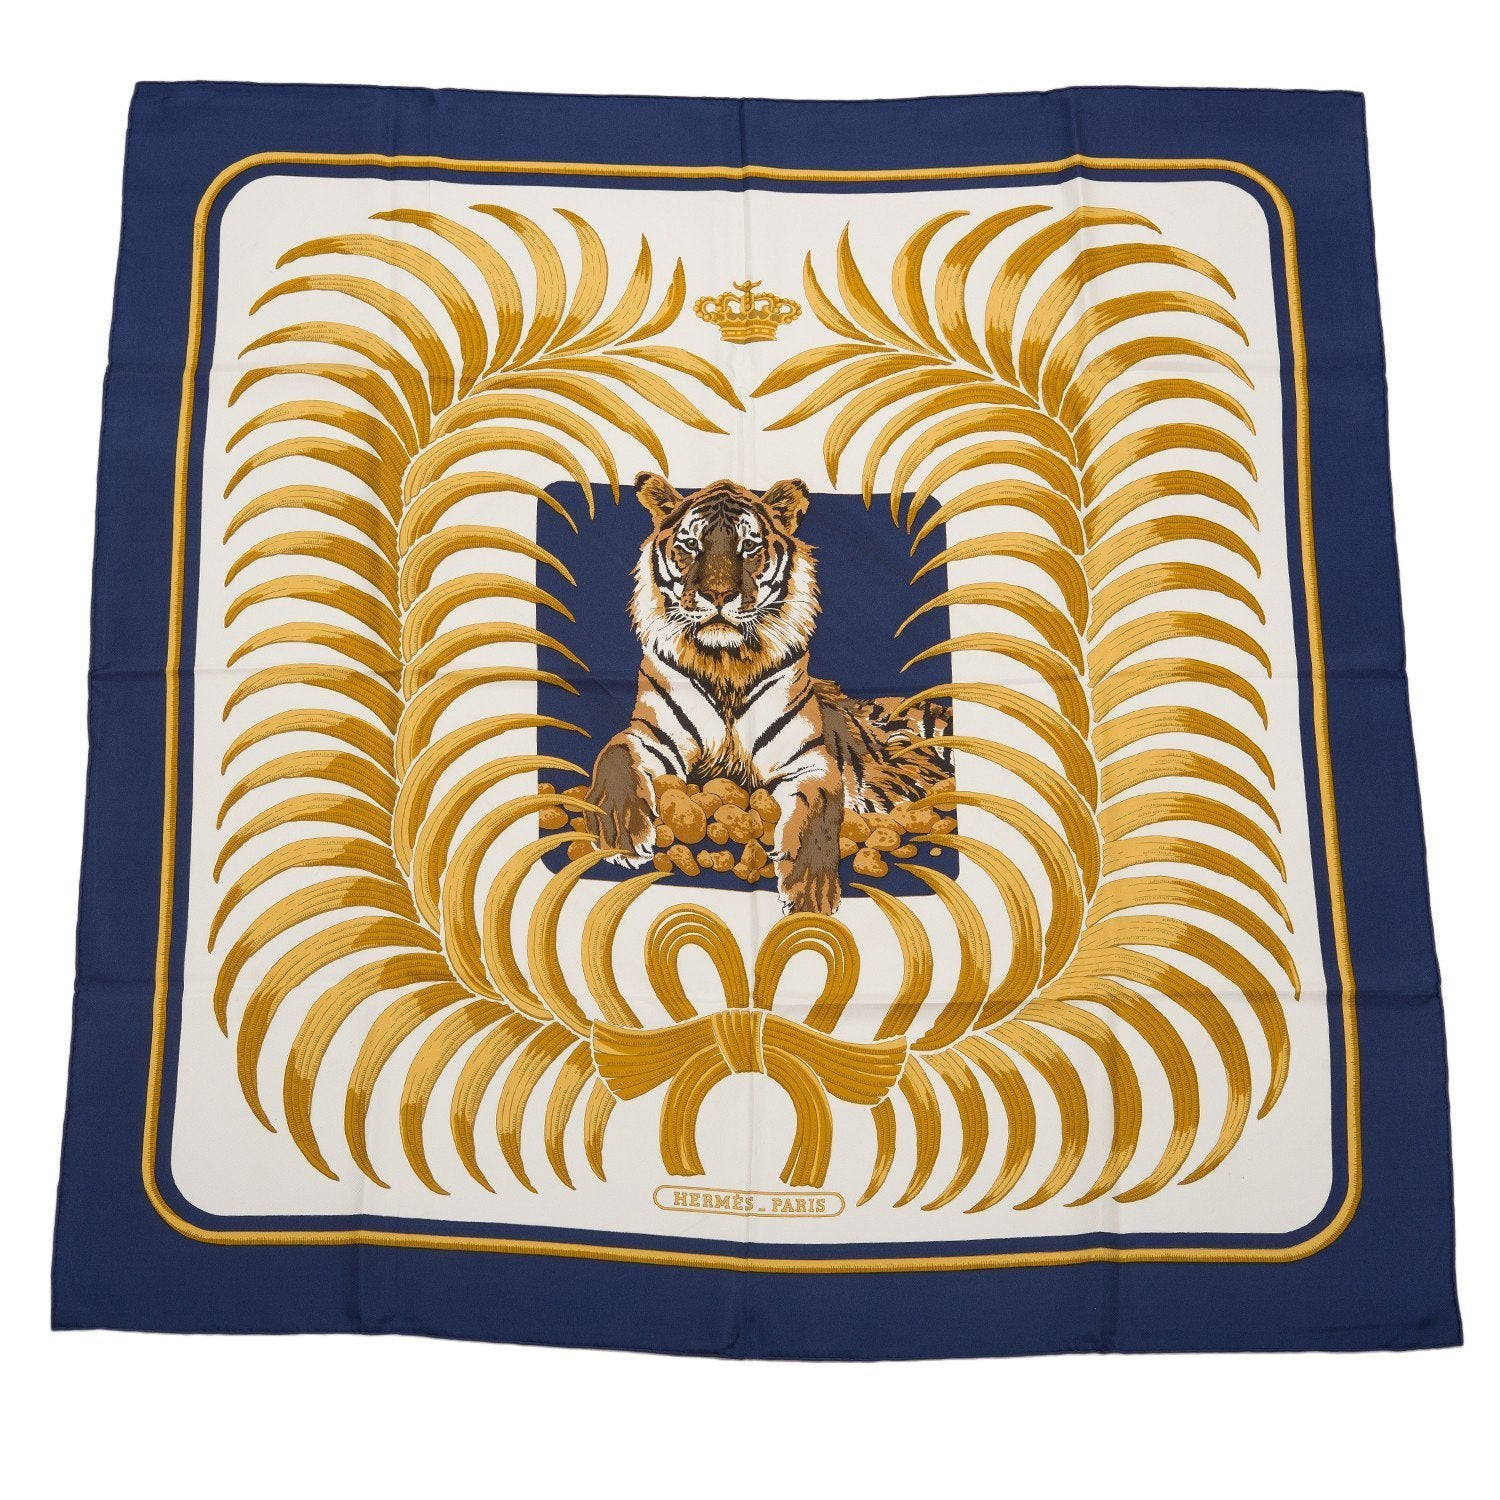 Hermes Vintage Tigre Royal Silk Twill Scarf 90Cm Preloved Mint Scarves